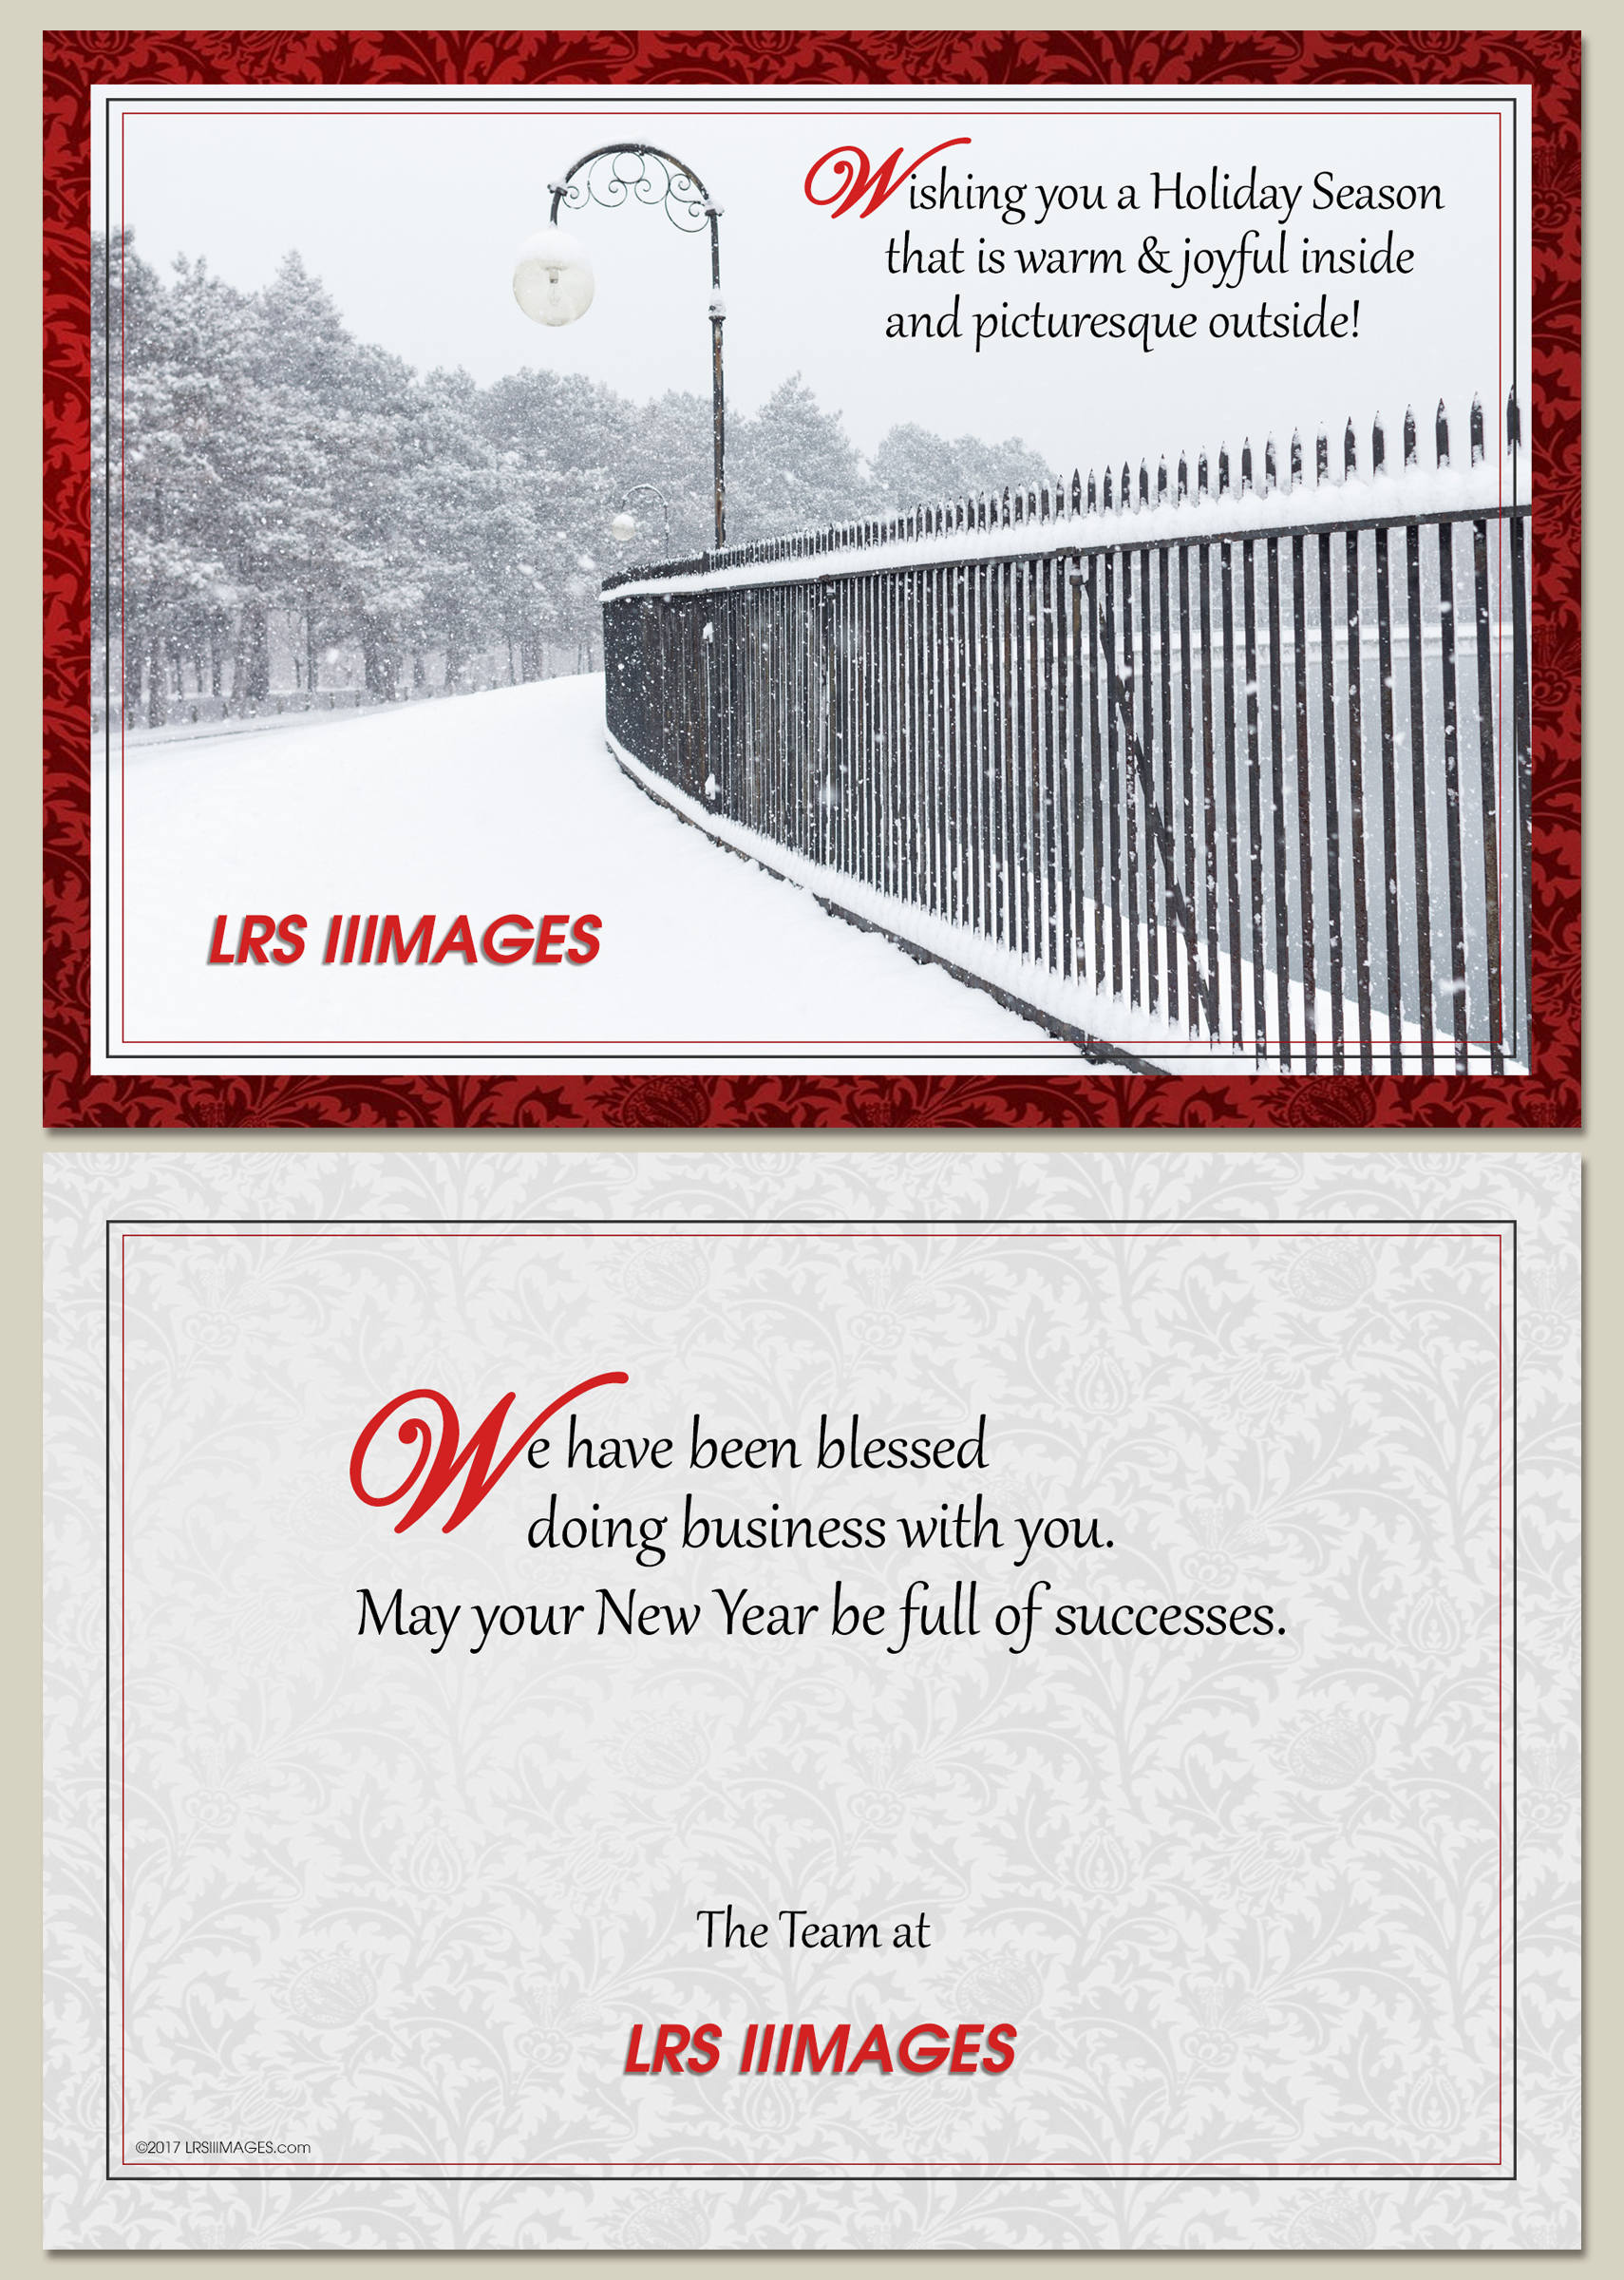 LRSIIIMAGES Christmas Greeting card 2017.